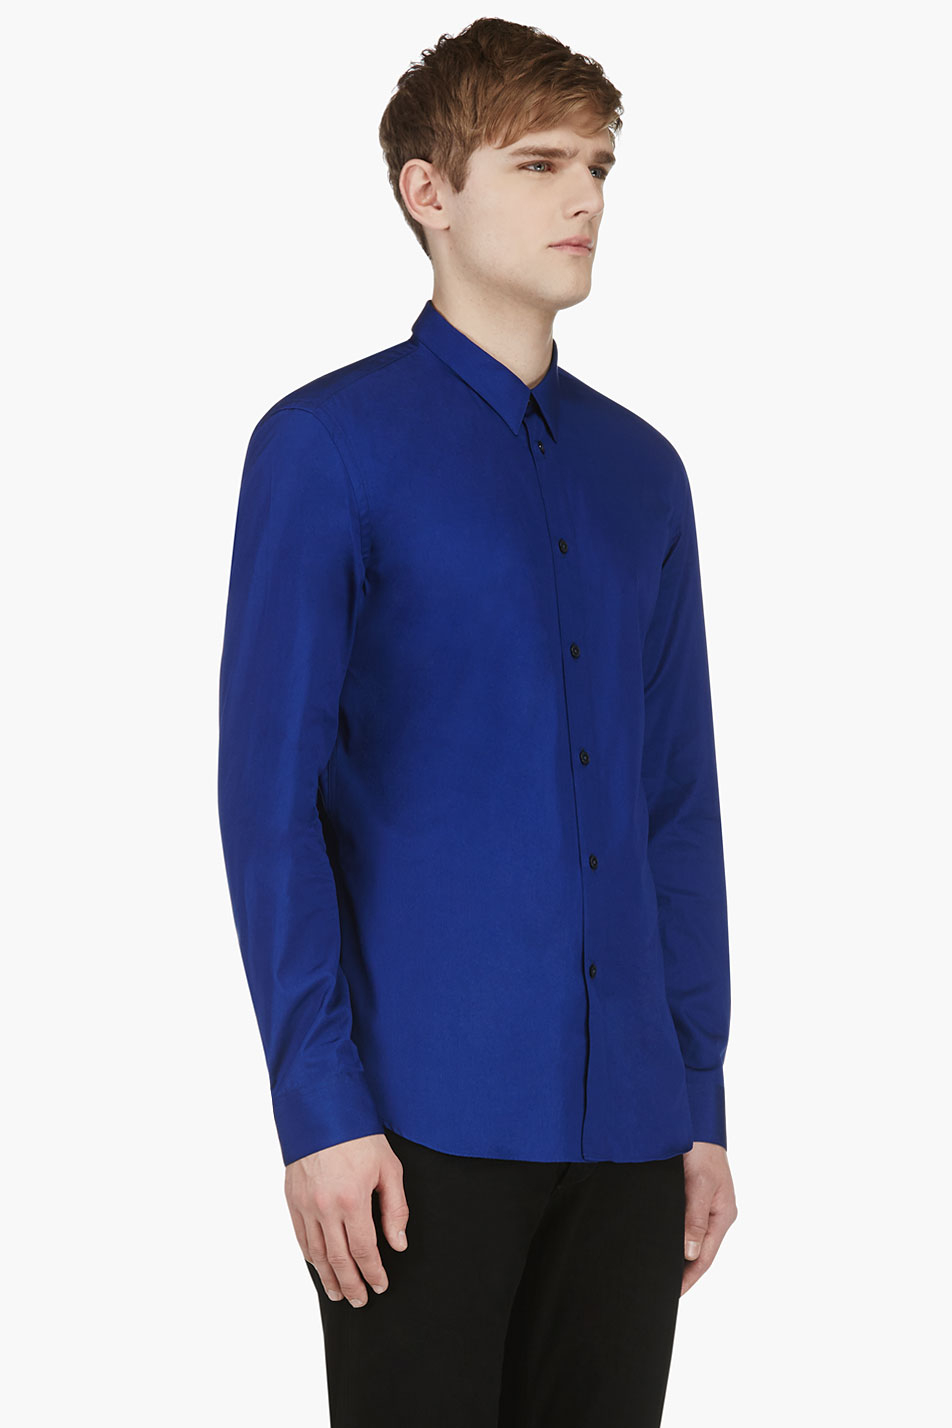 Calvin klein royal blue slim fit button down shirt in blue for Royals button up shirt